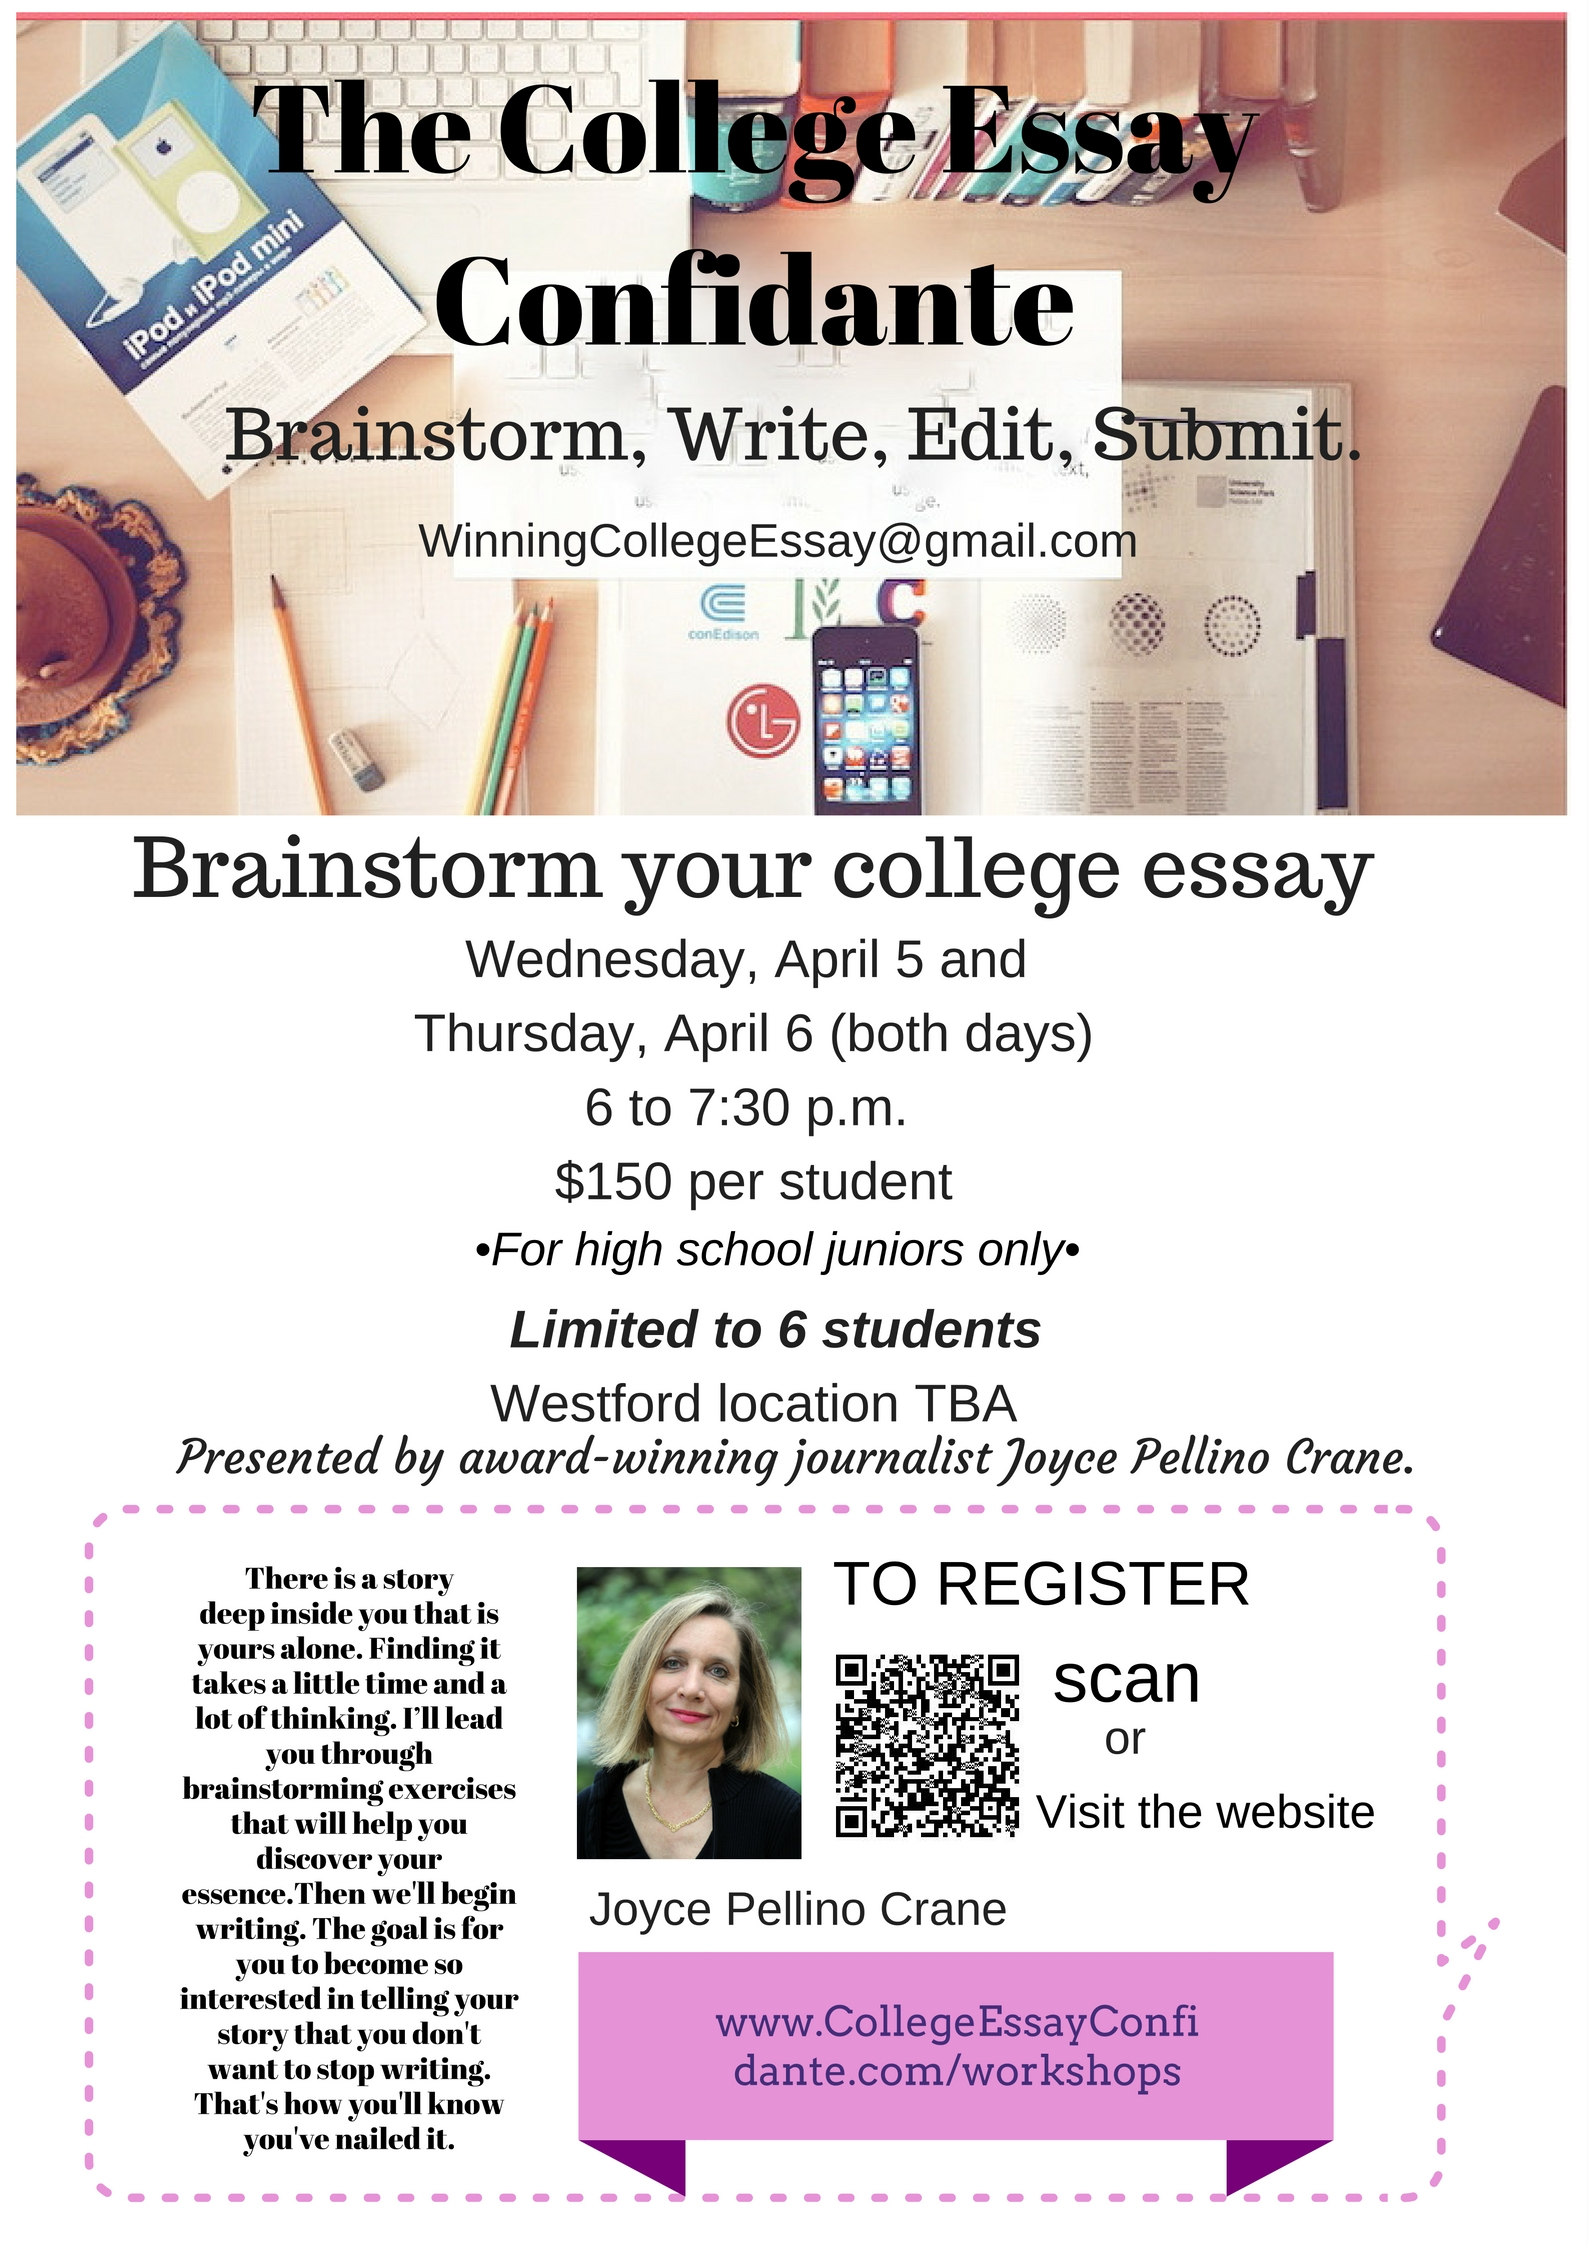 the college essay confidante help your college application brainstorm your college essay workshop 5 and 6 register now